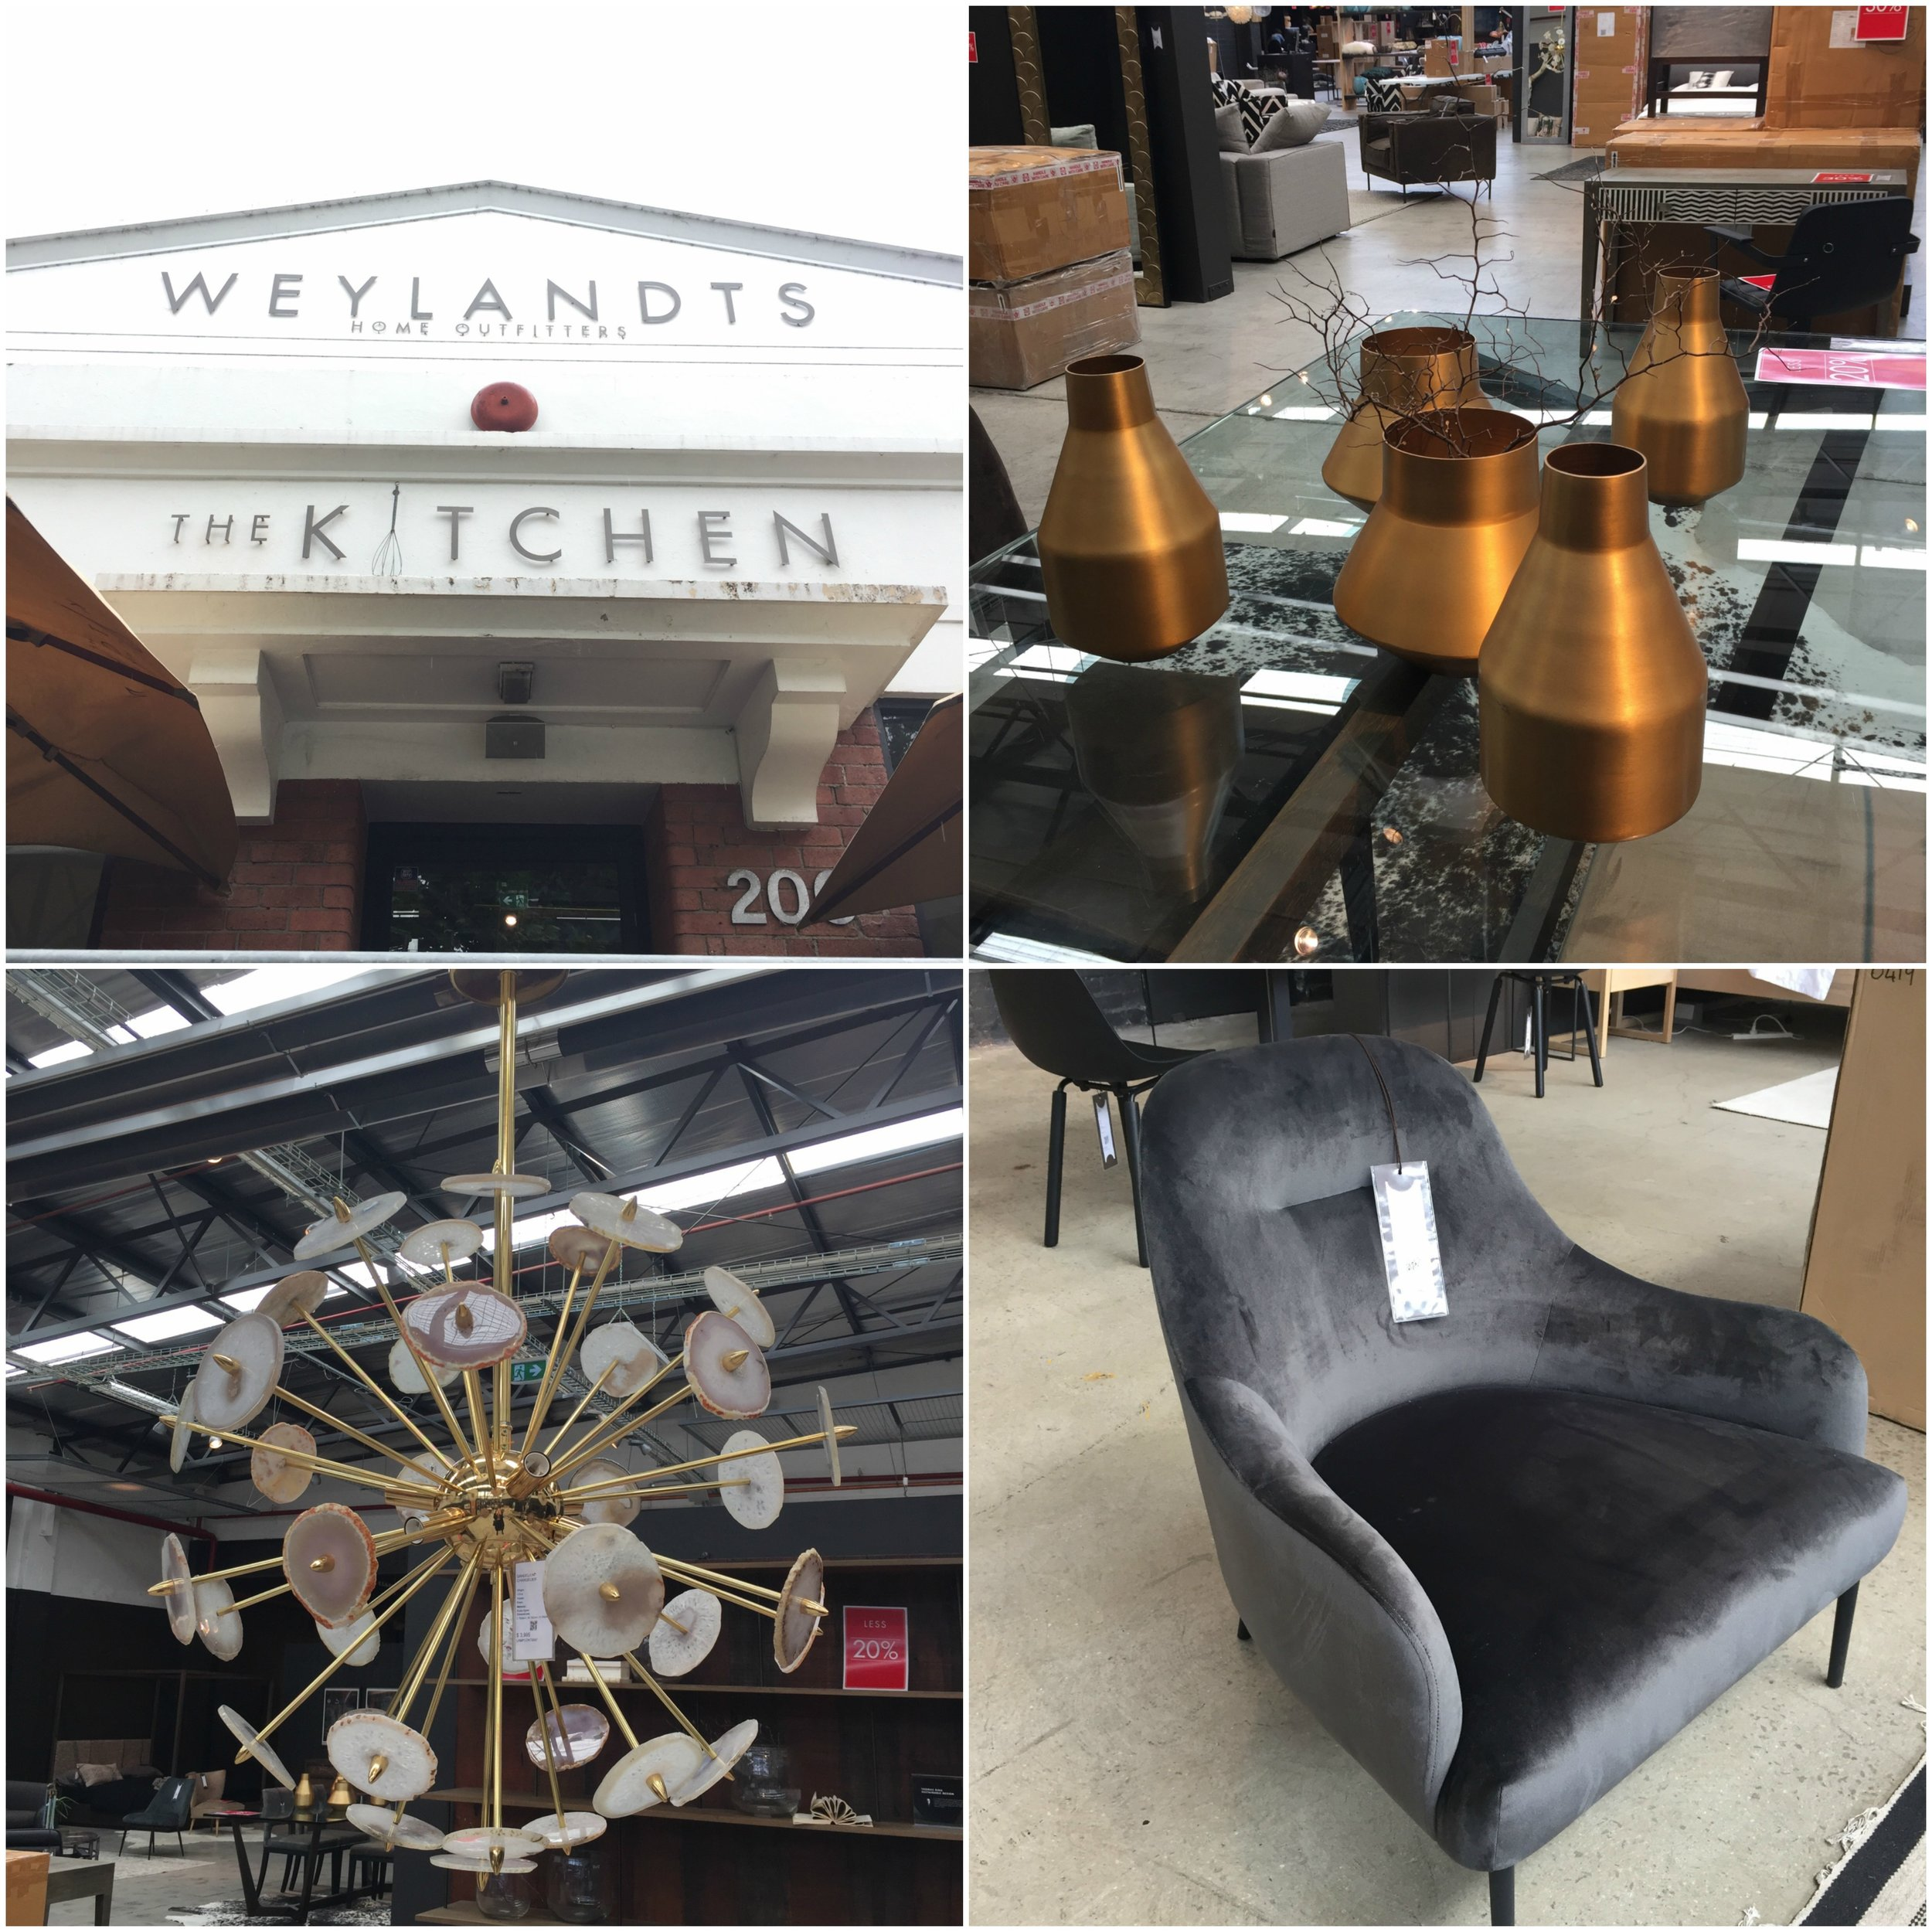 Our very first stop was Weylandts, where we wandered through their warehouse full of boho-chic furniture pieces and an eclectic selection of stunning lights.